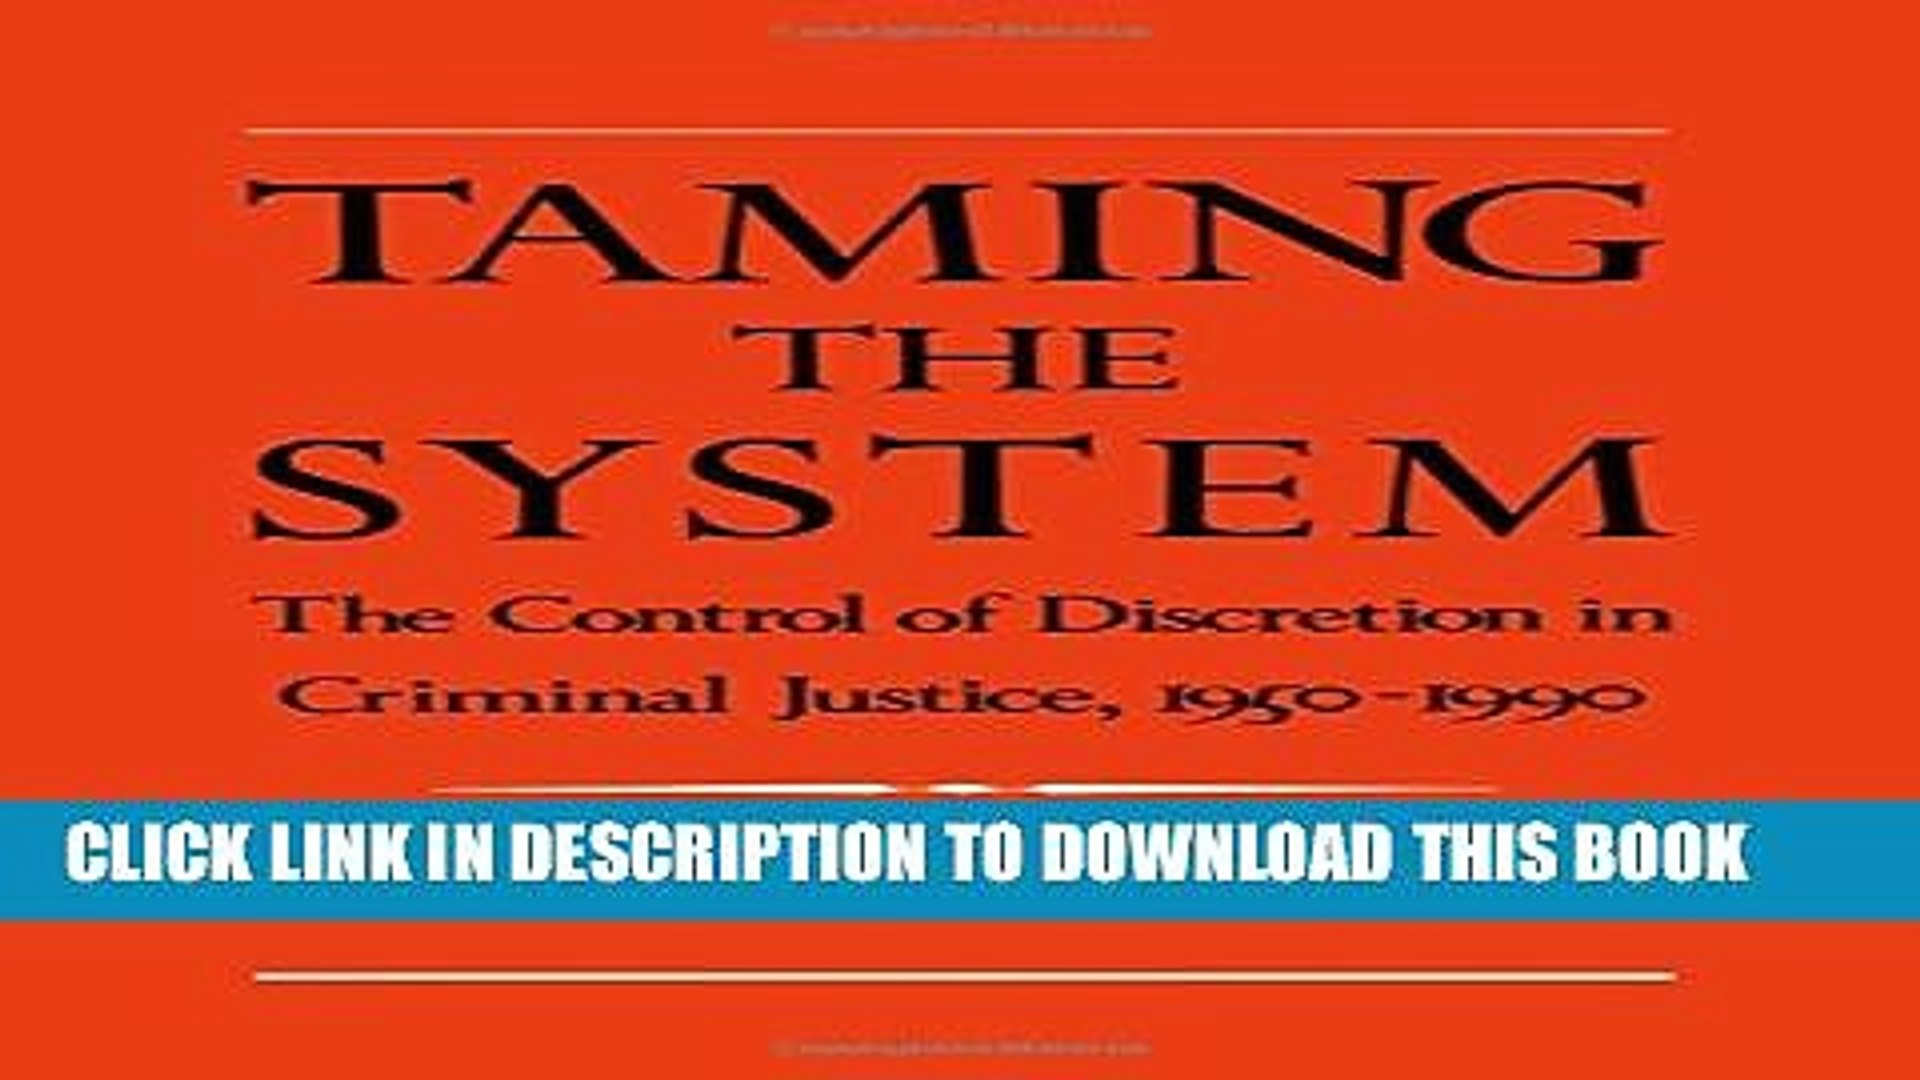 Taming the System: The Control of Discretion in Criminal Justice, 1950-1990